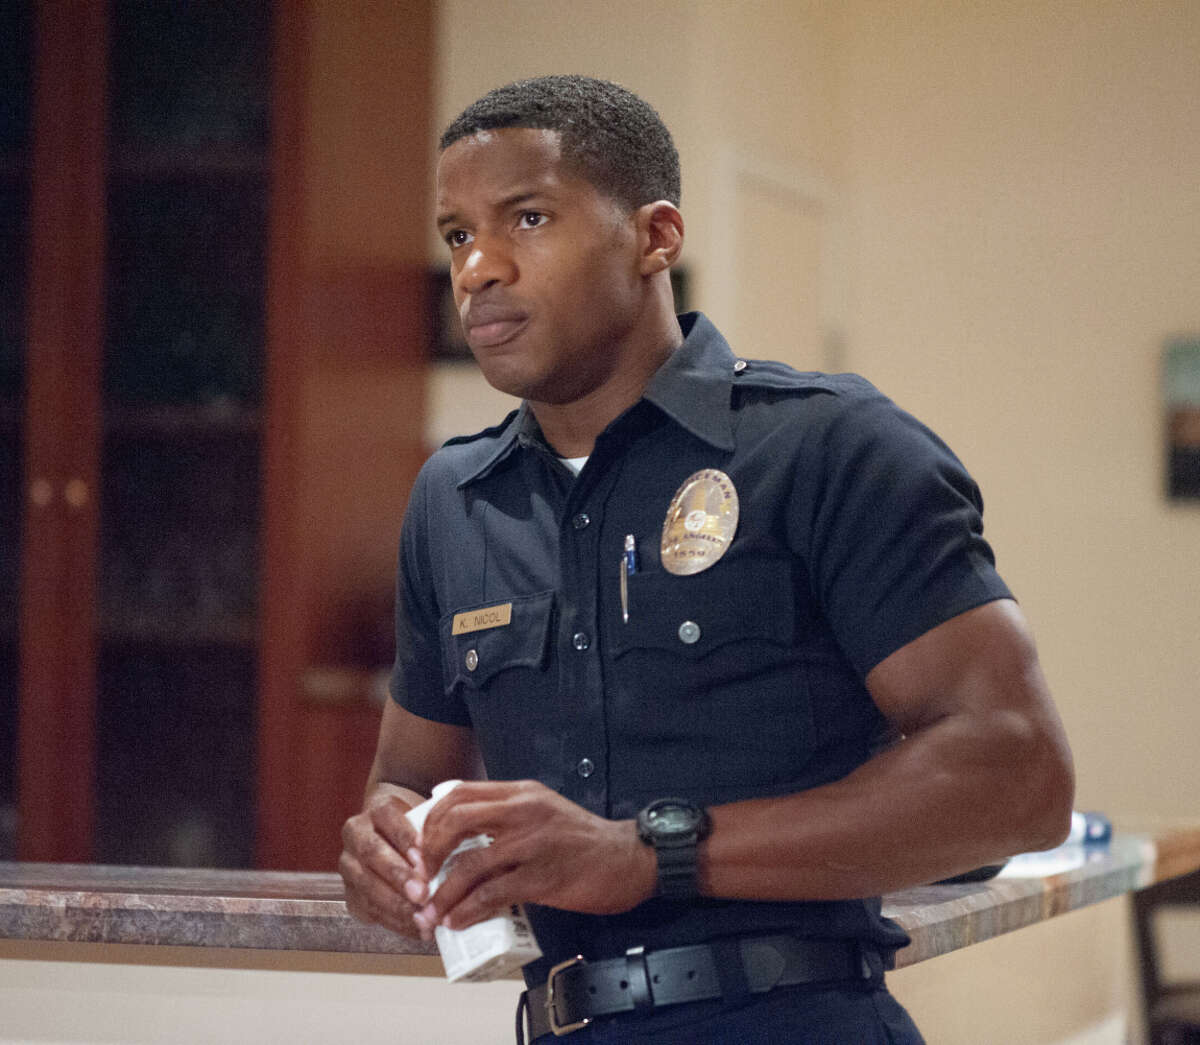 """A fierce stage mom (Minnie Driver, top left) sees her British pop star daughter (Gugu Mbatha-Raw) on the verge of U.S. fame when the singer meets a handsome young cop (Nate Parker, below) in """"Beyond the Lights."""" Nate Parker plays a young police officer who meets a British pop star (Gugu Mbatha-Raw) reaching for U.S. stardom in Relativity Media's """"Beyond the Lights."""""""